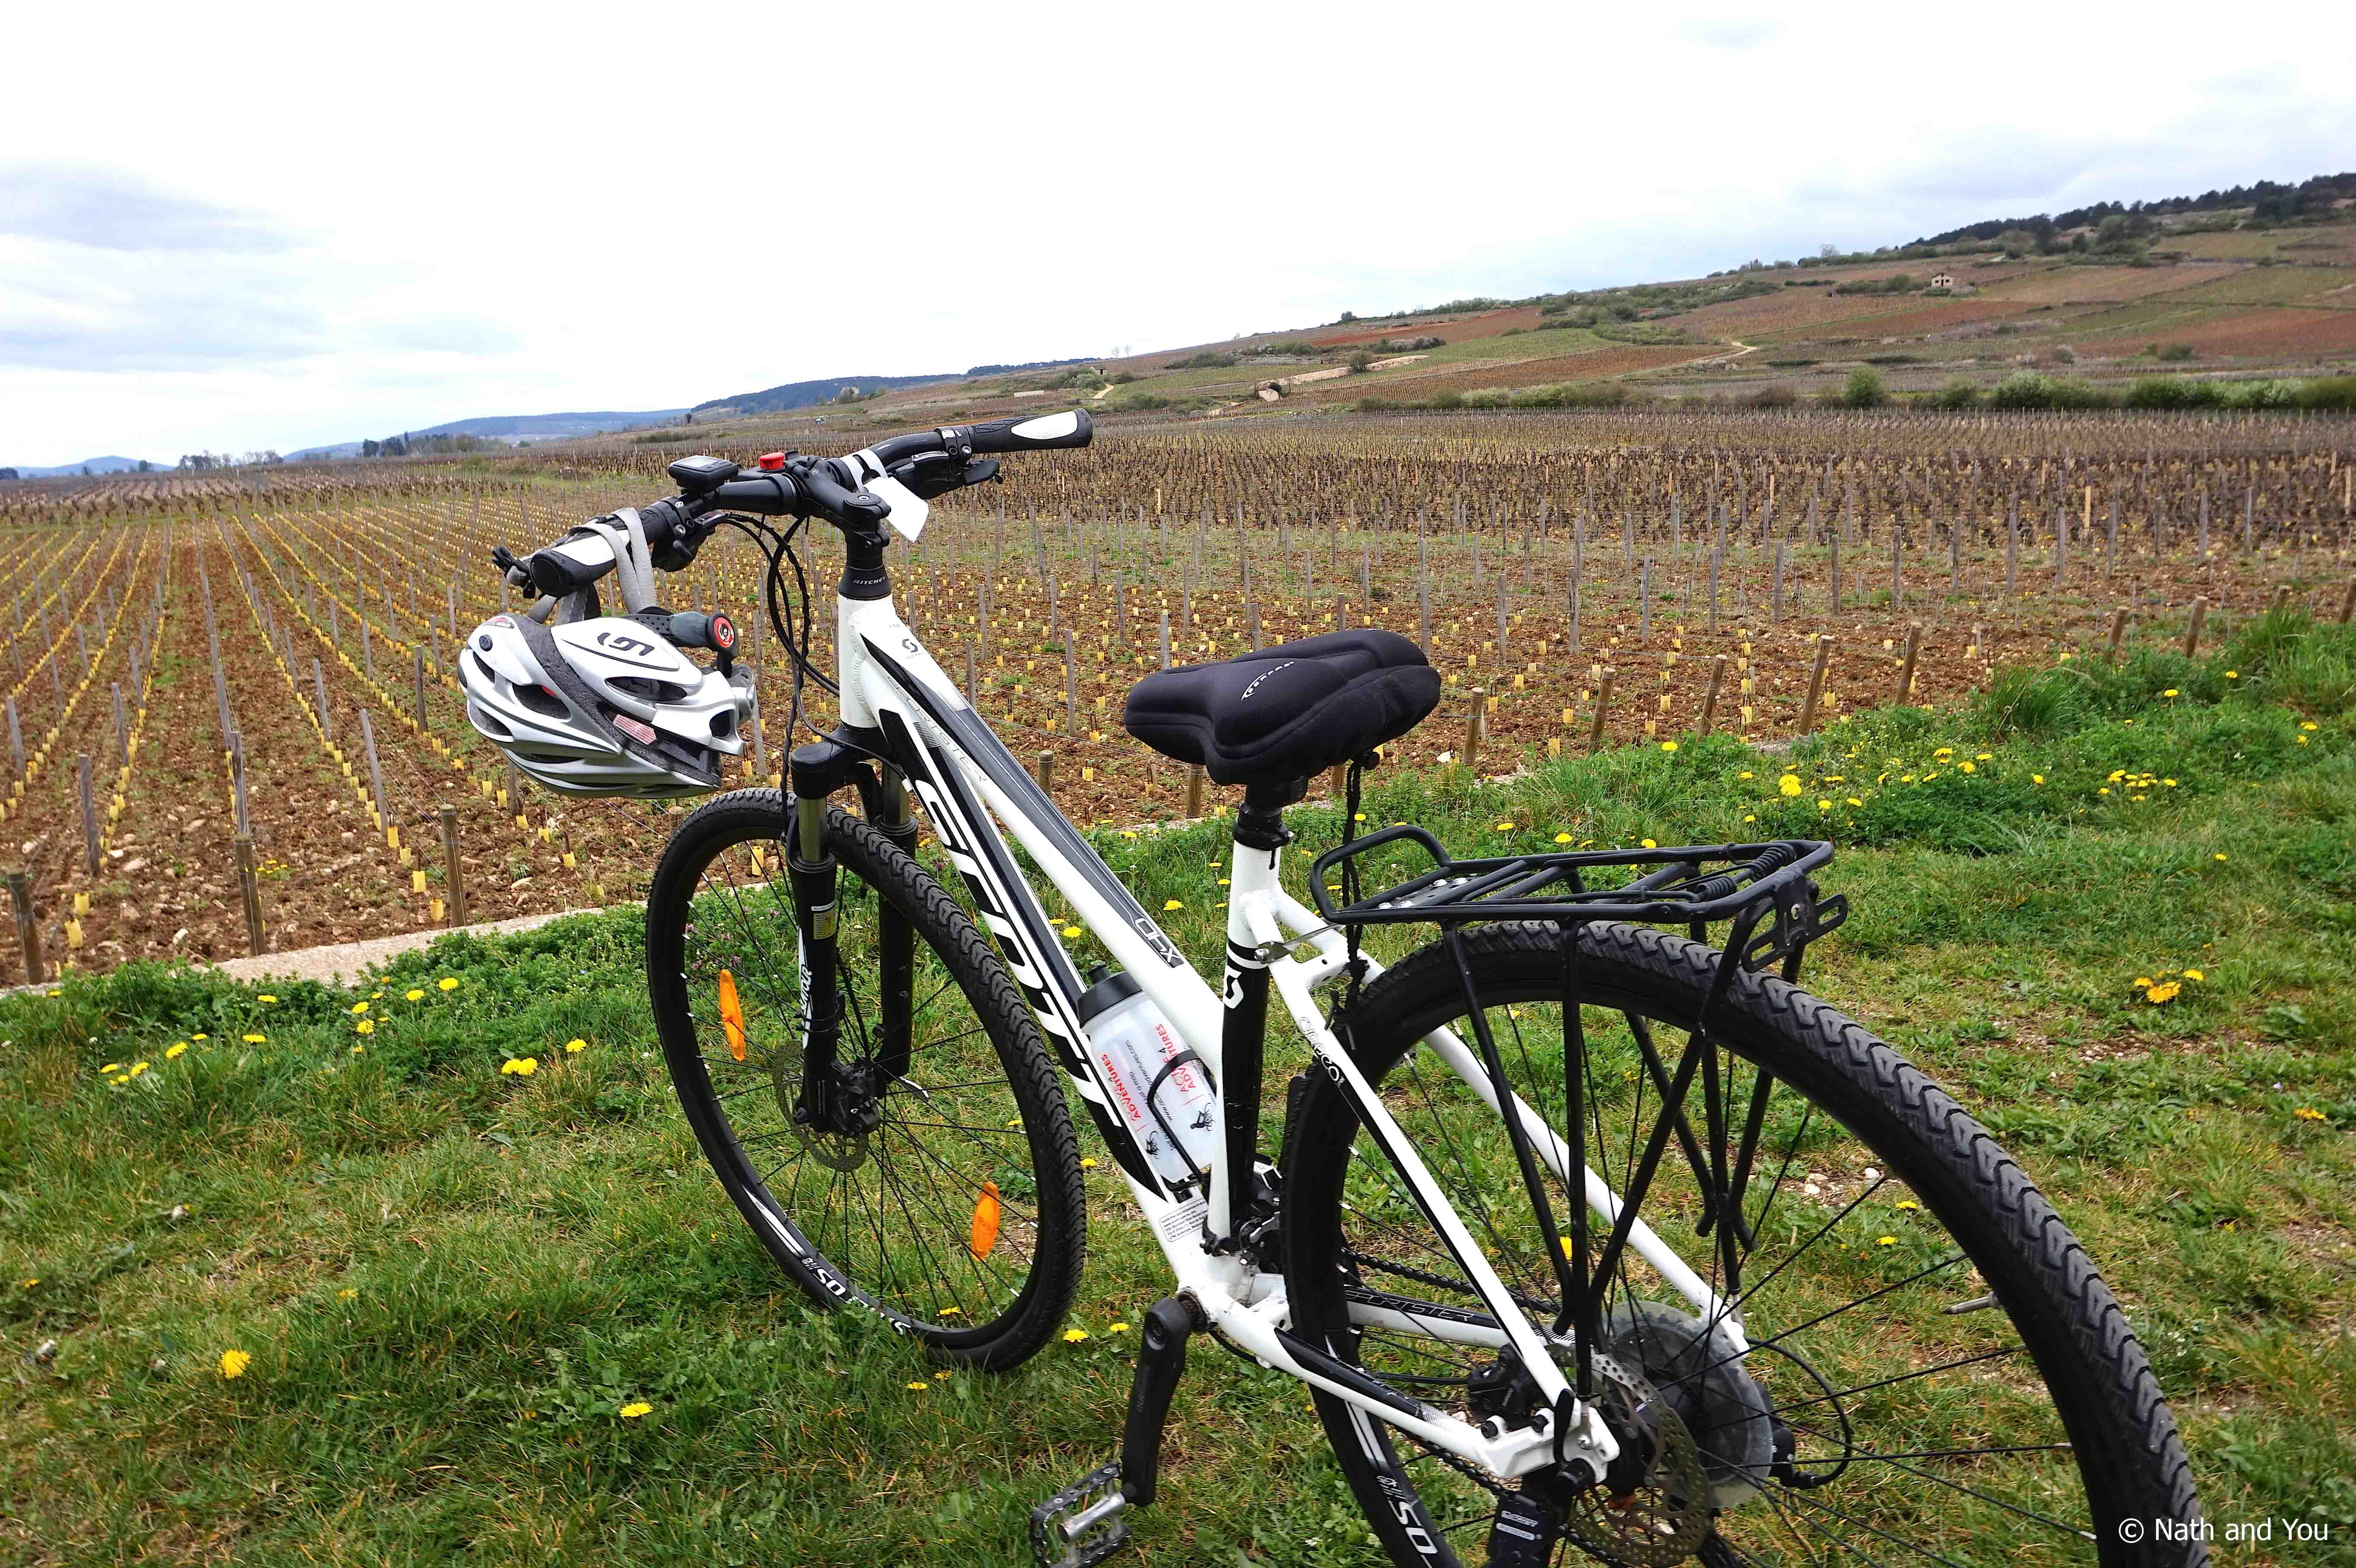 Week-end-Beaune-Balade-Velo-Vigne-Nath-and-you